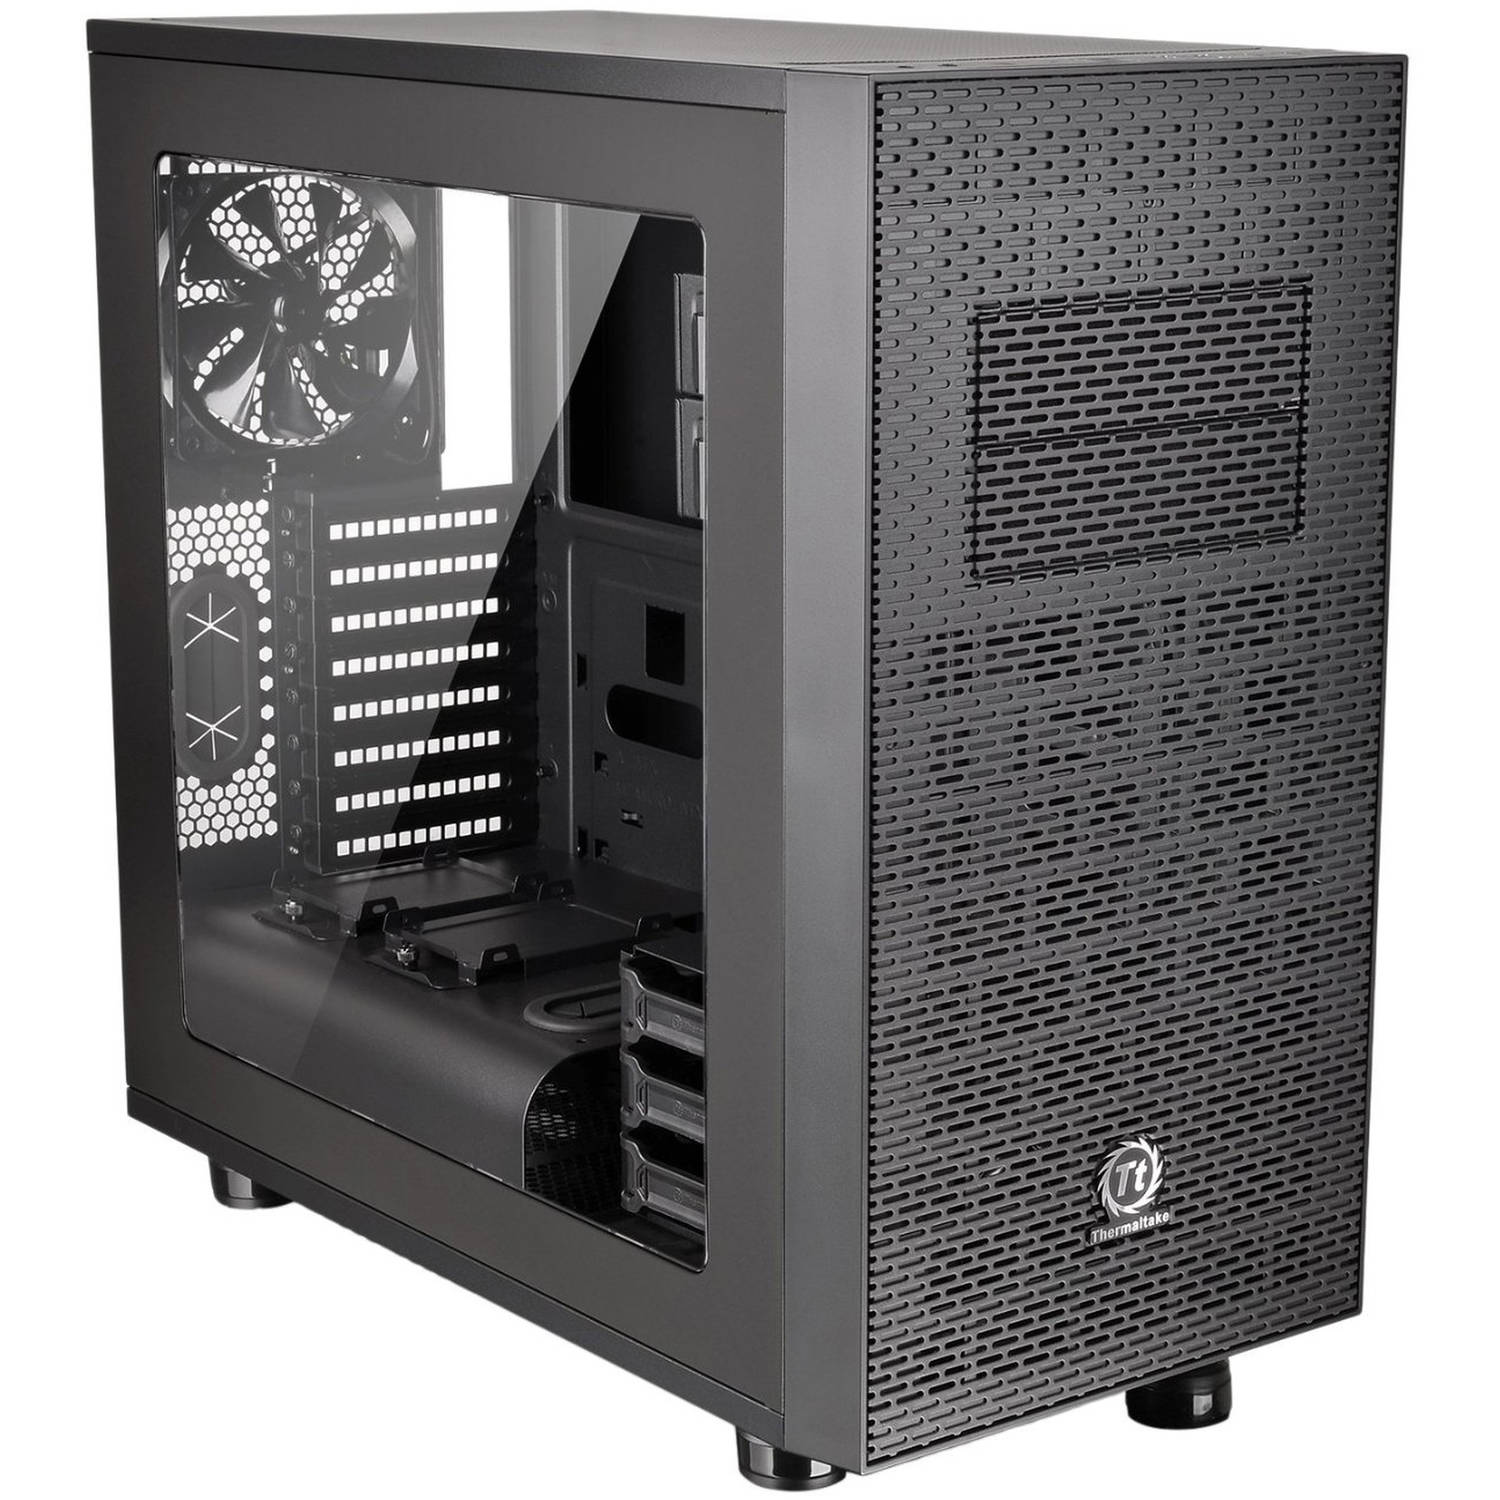 Core X31 Mid Tower Chassis